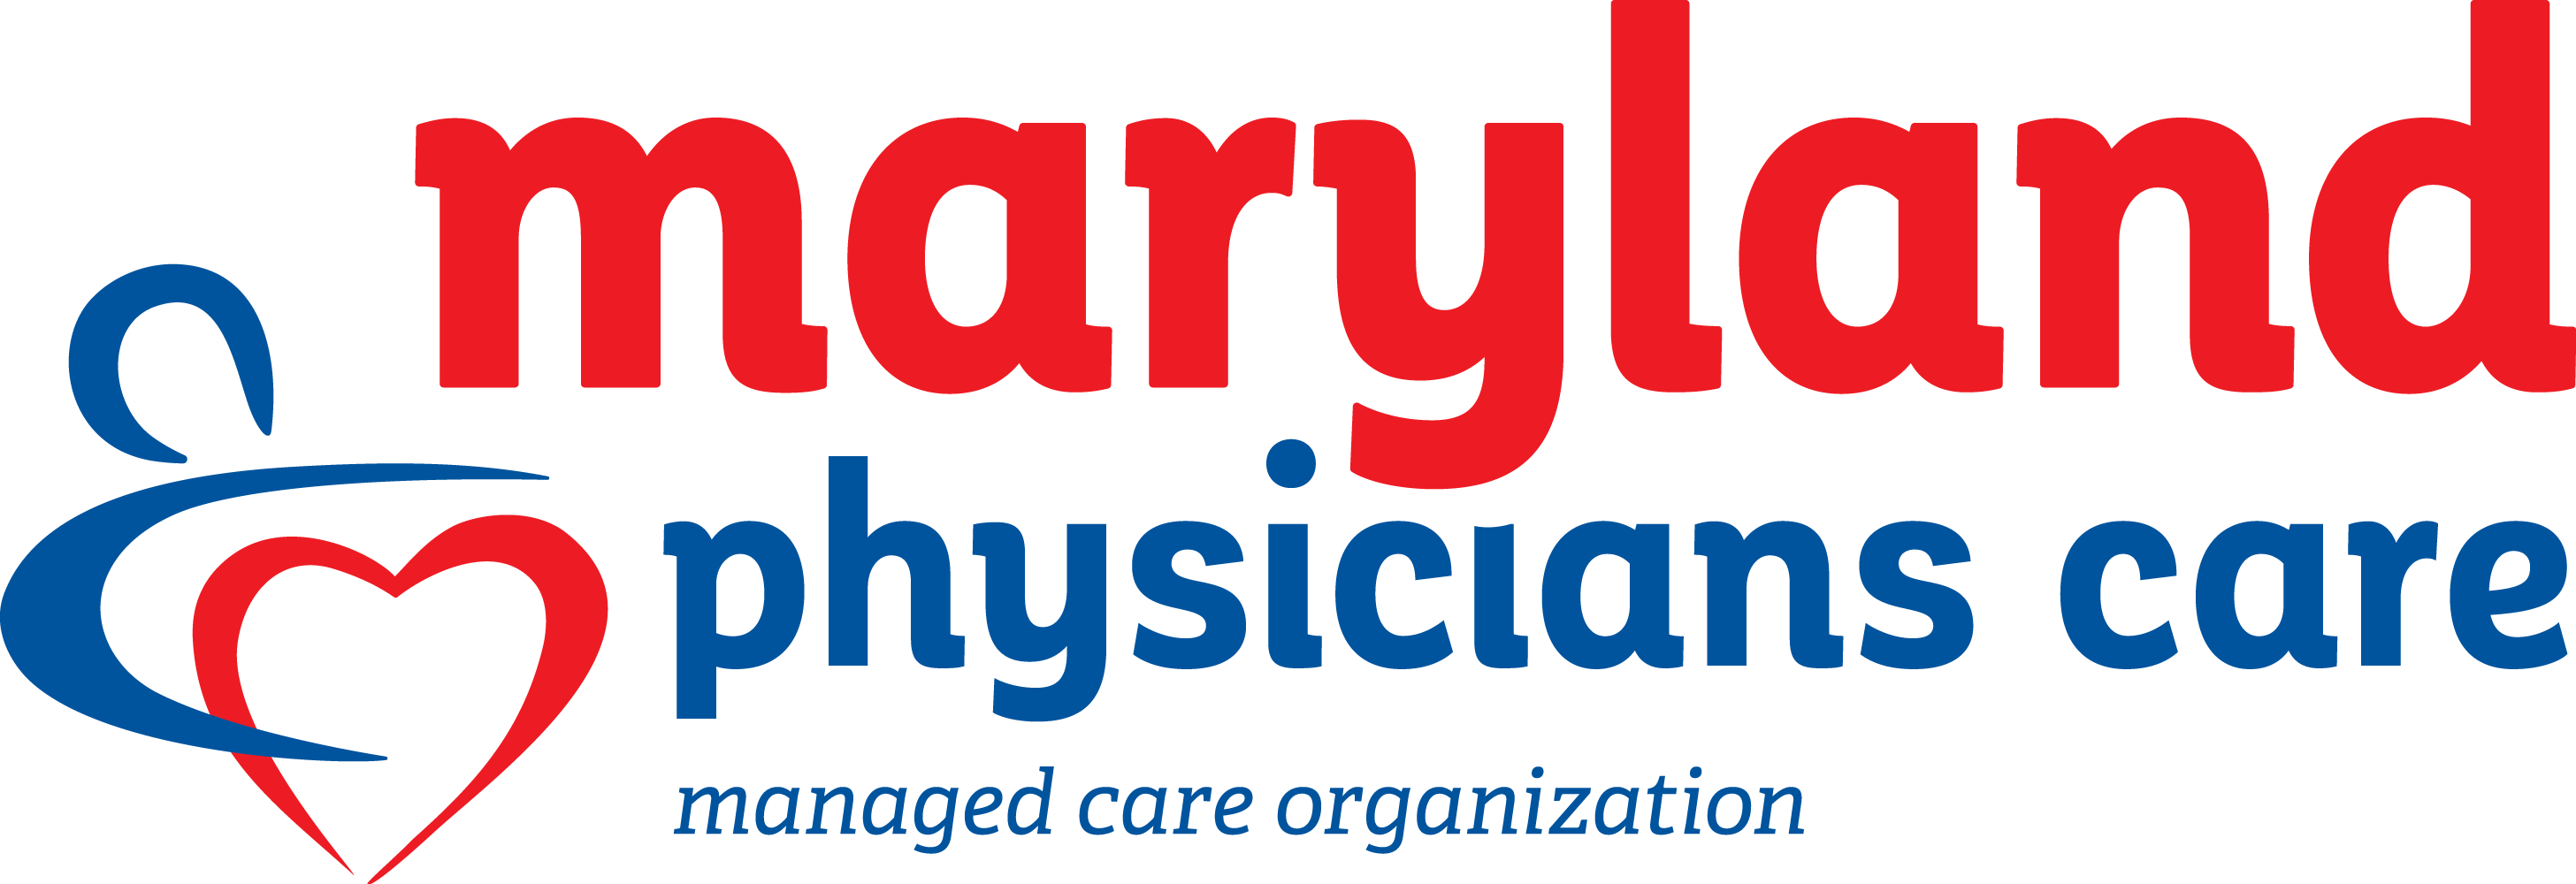 maryland physicians